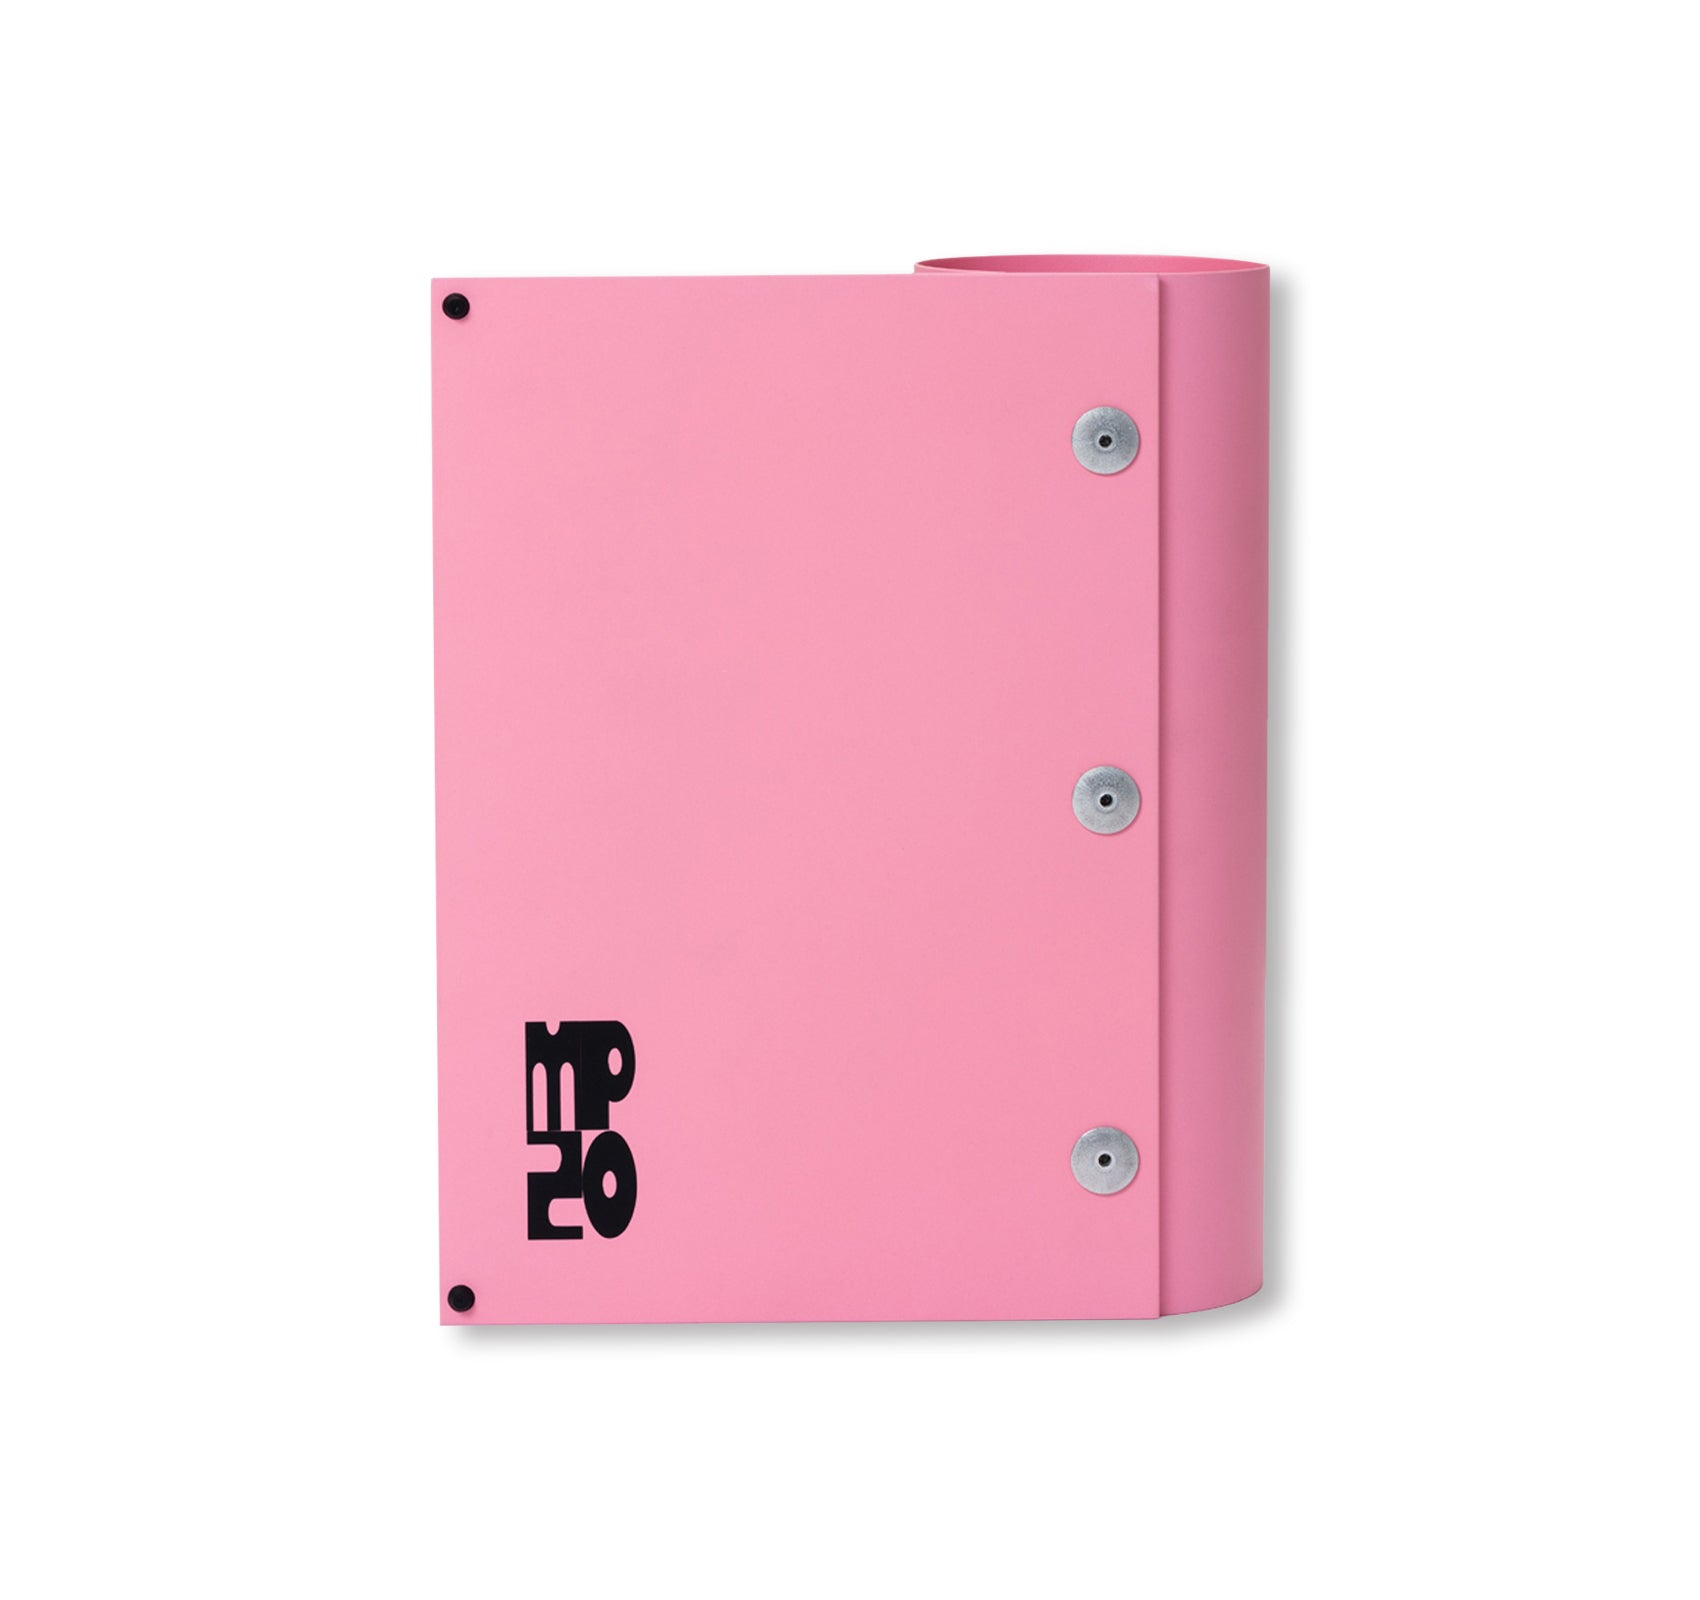 BINDER by Matt Paweski